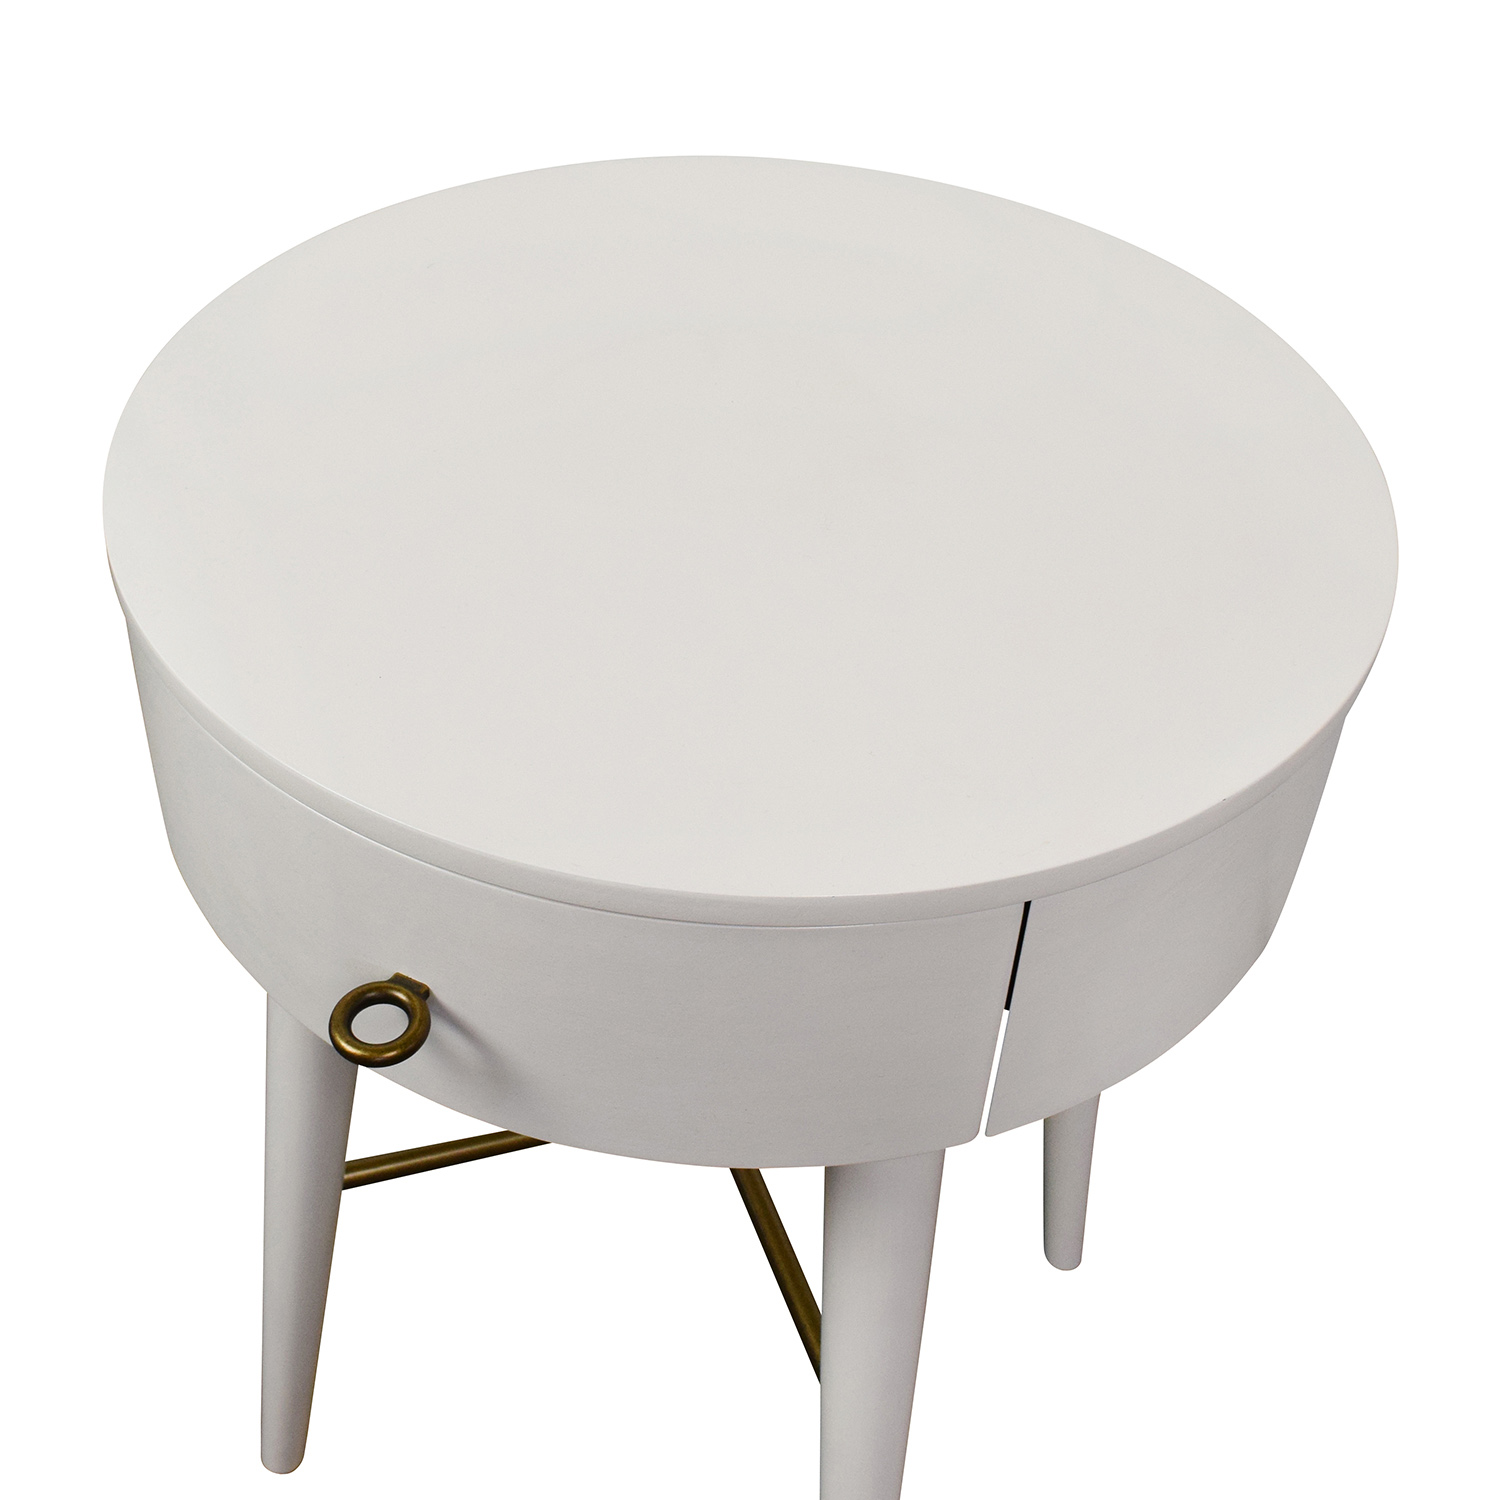 ... West Elm West Elm Penelope White Round Nightstand Tables ...